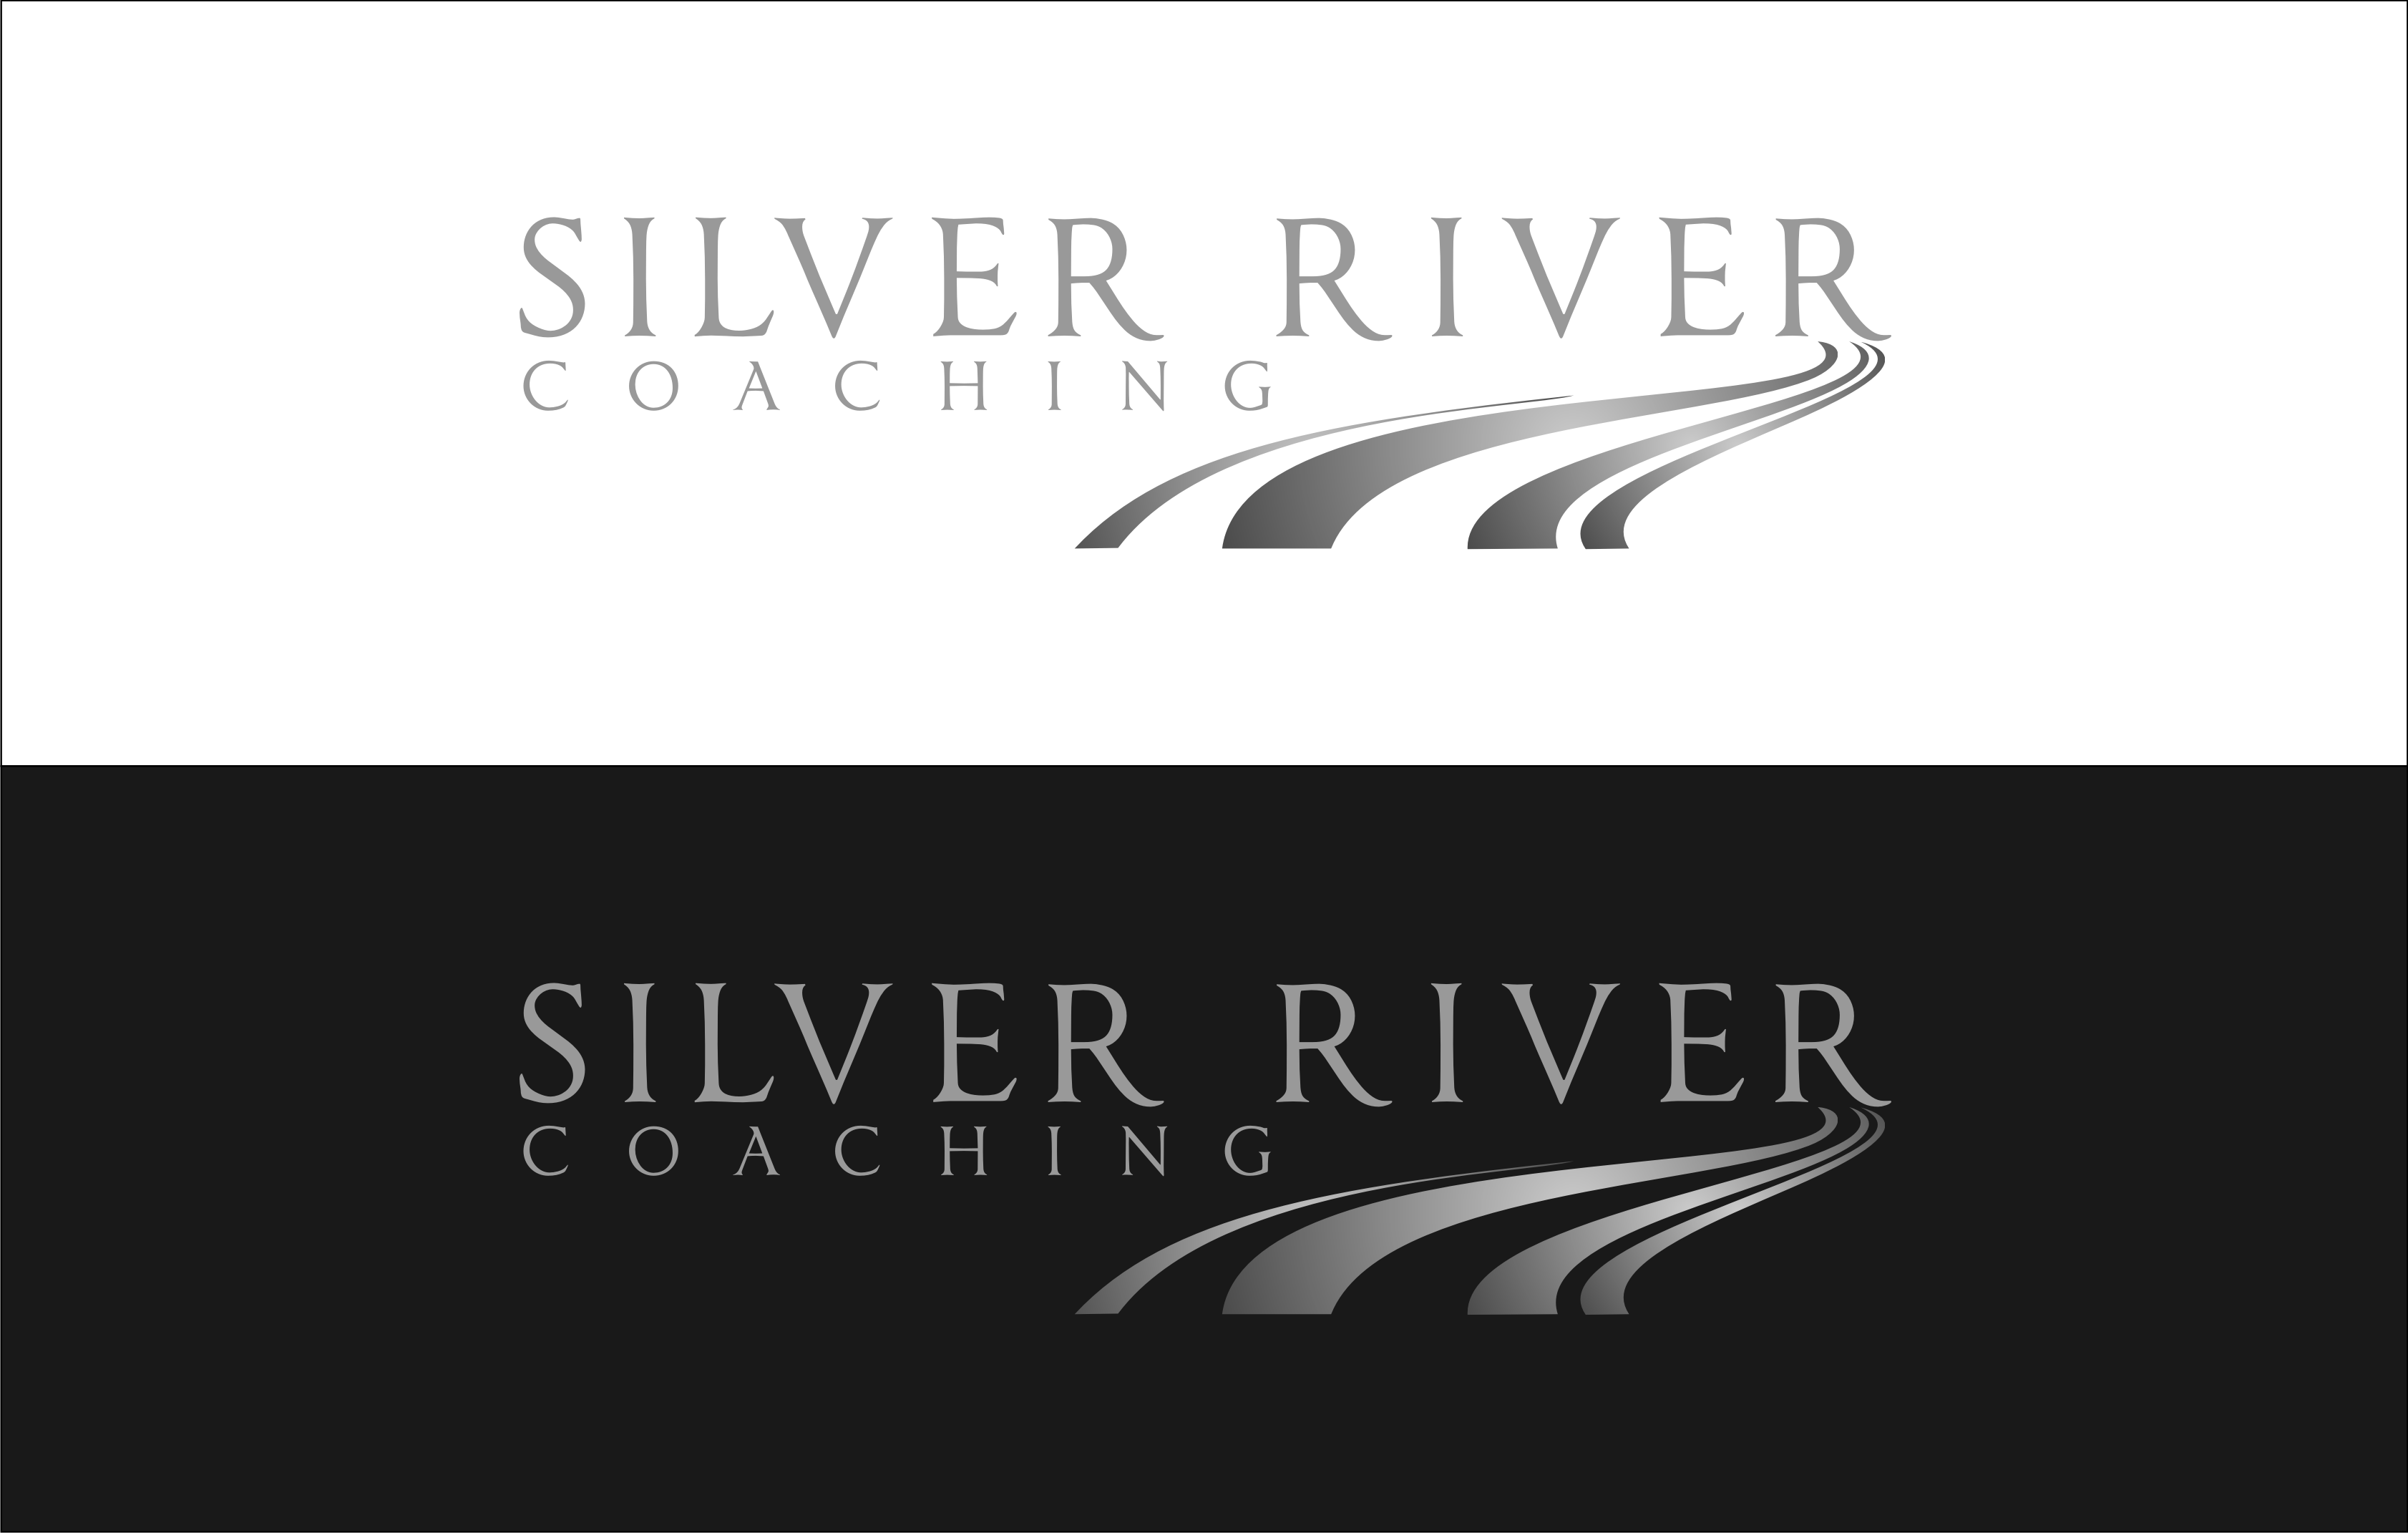 Logo Design by pahit - Entry No. 199 in the Logo Design Contest Logo Design Needed for Exciting New Company Silver River Coaching.